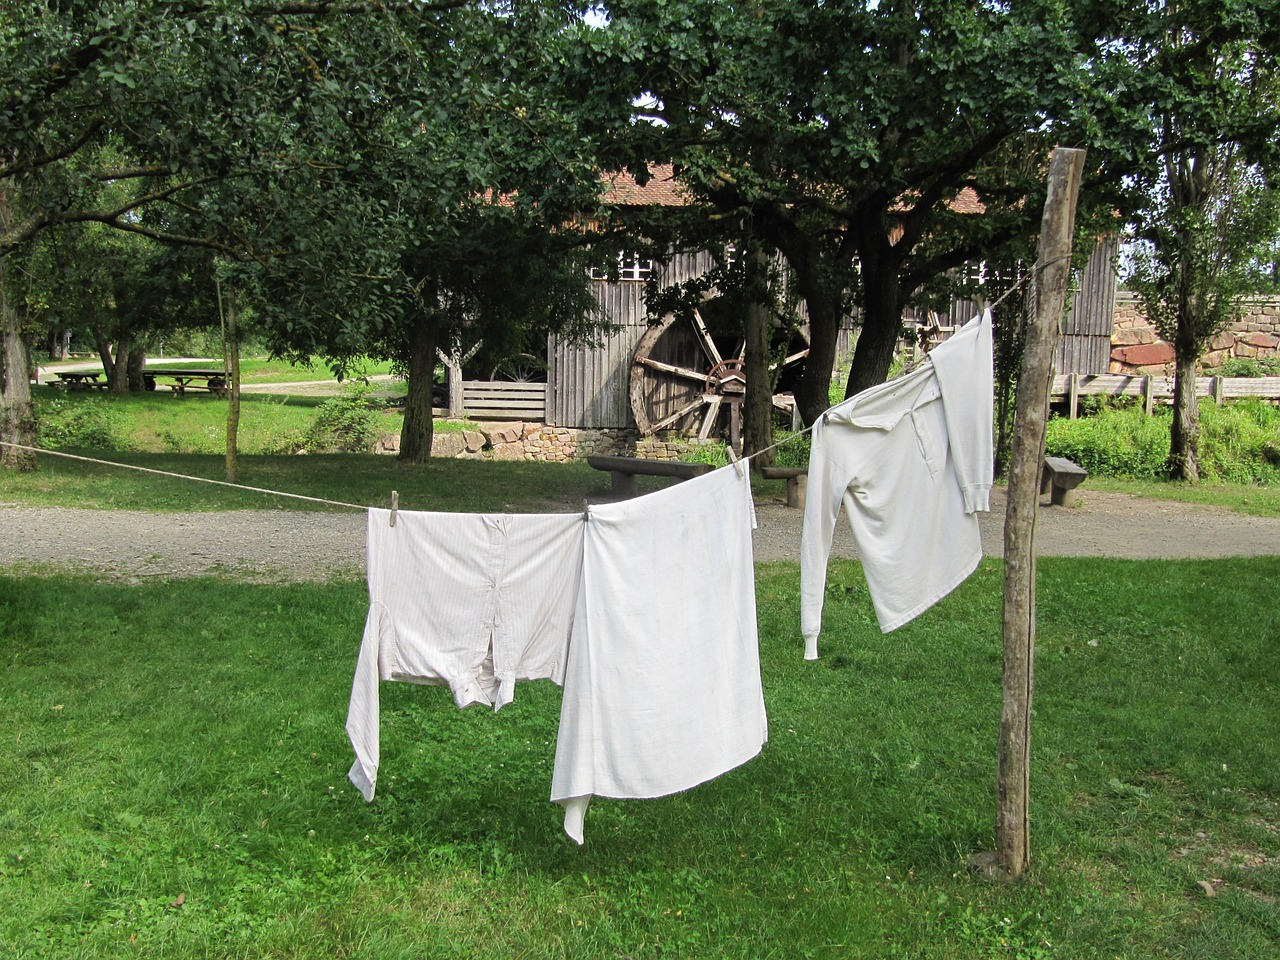 ungersheim ecomuseum clothes line museum free photo